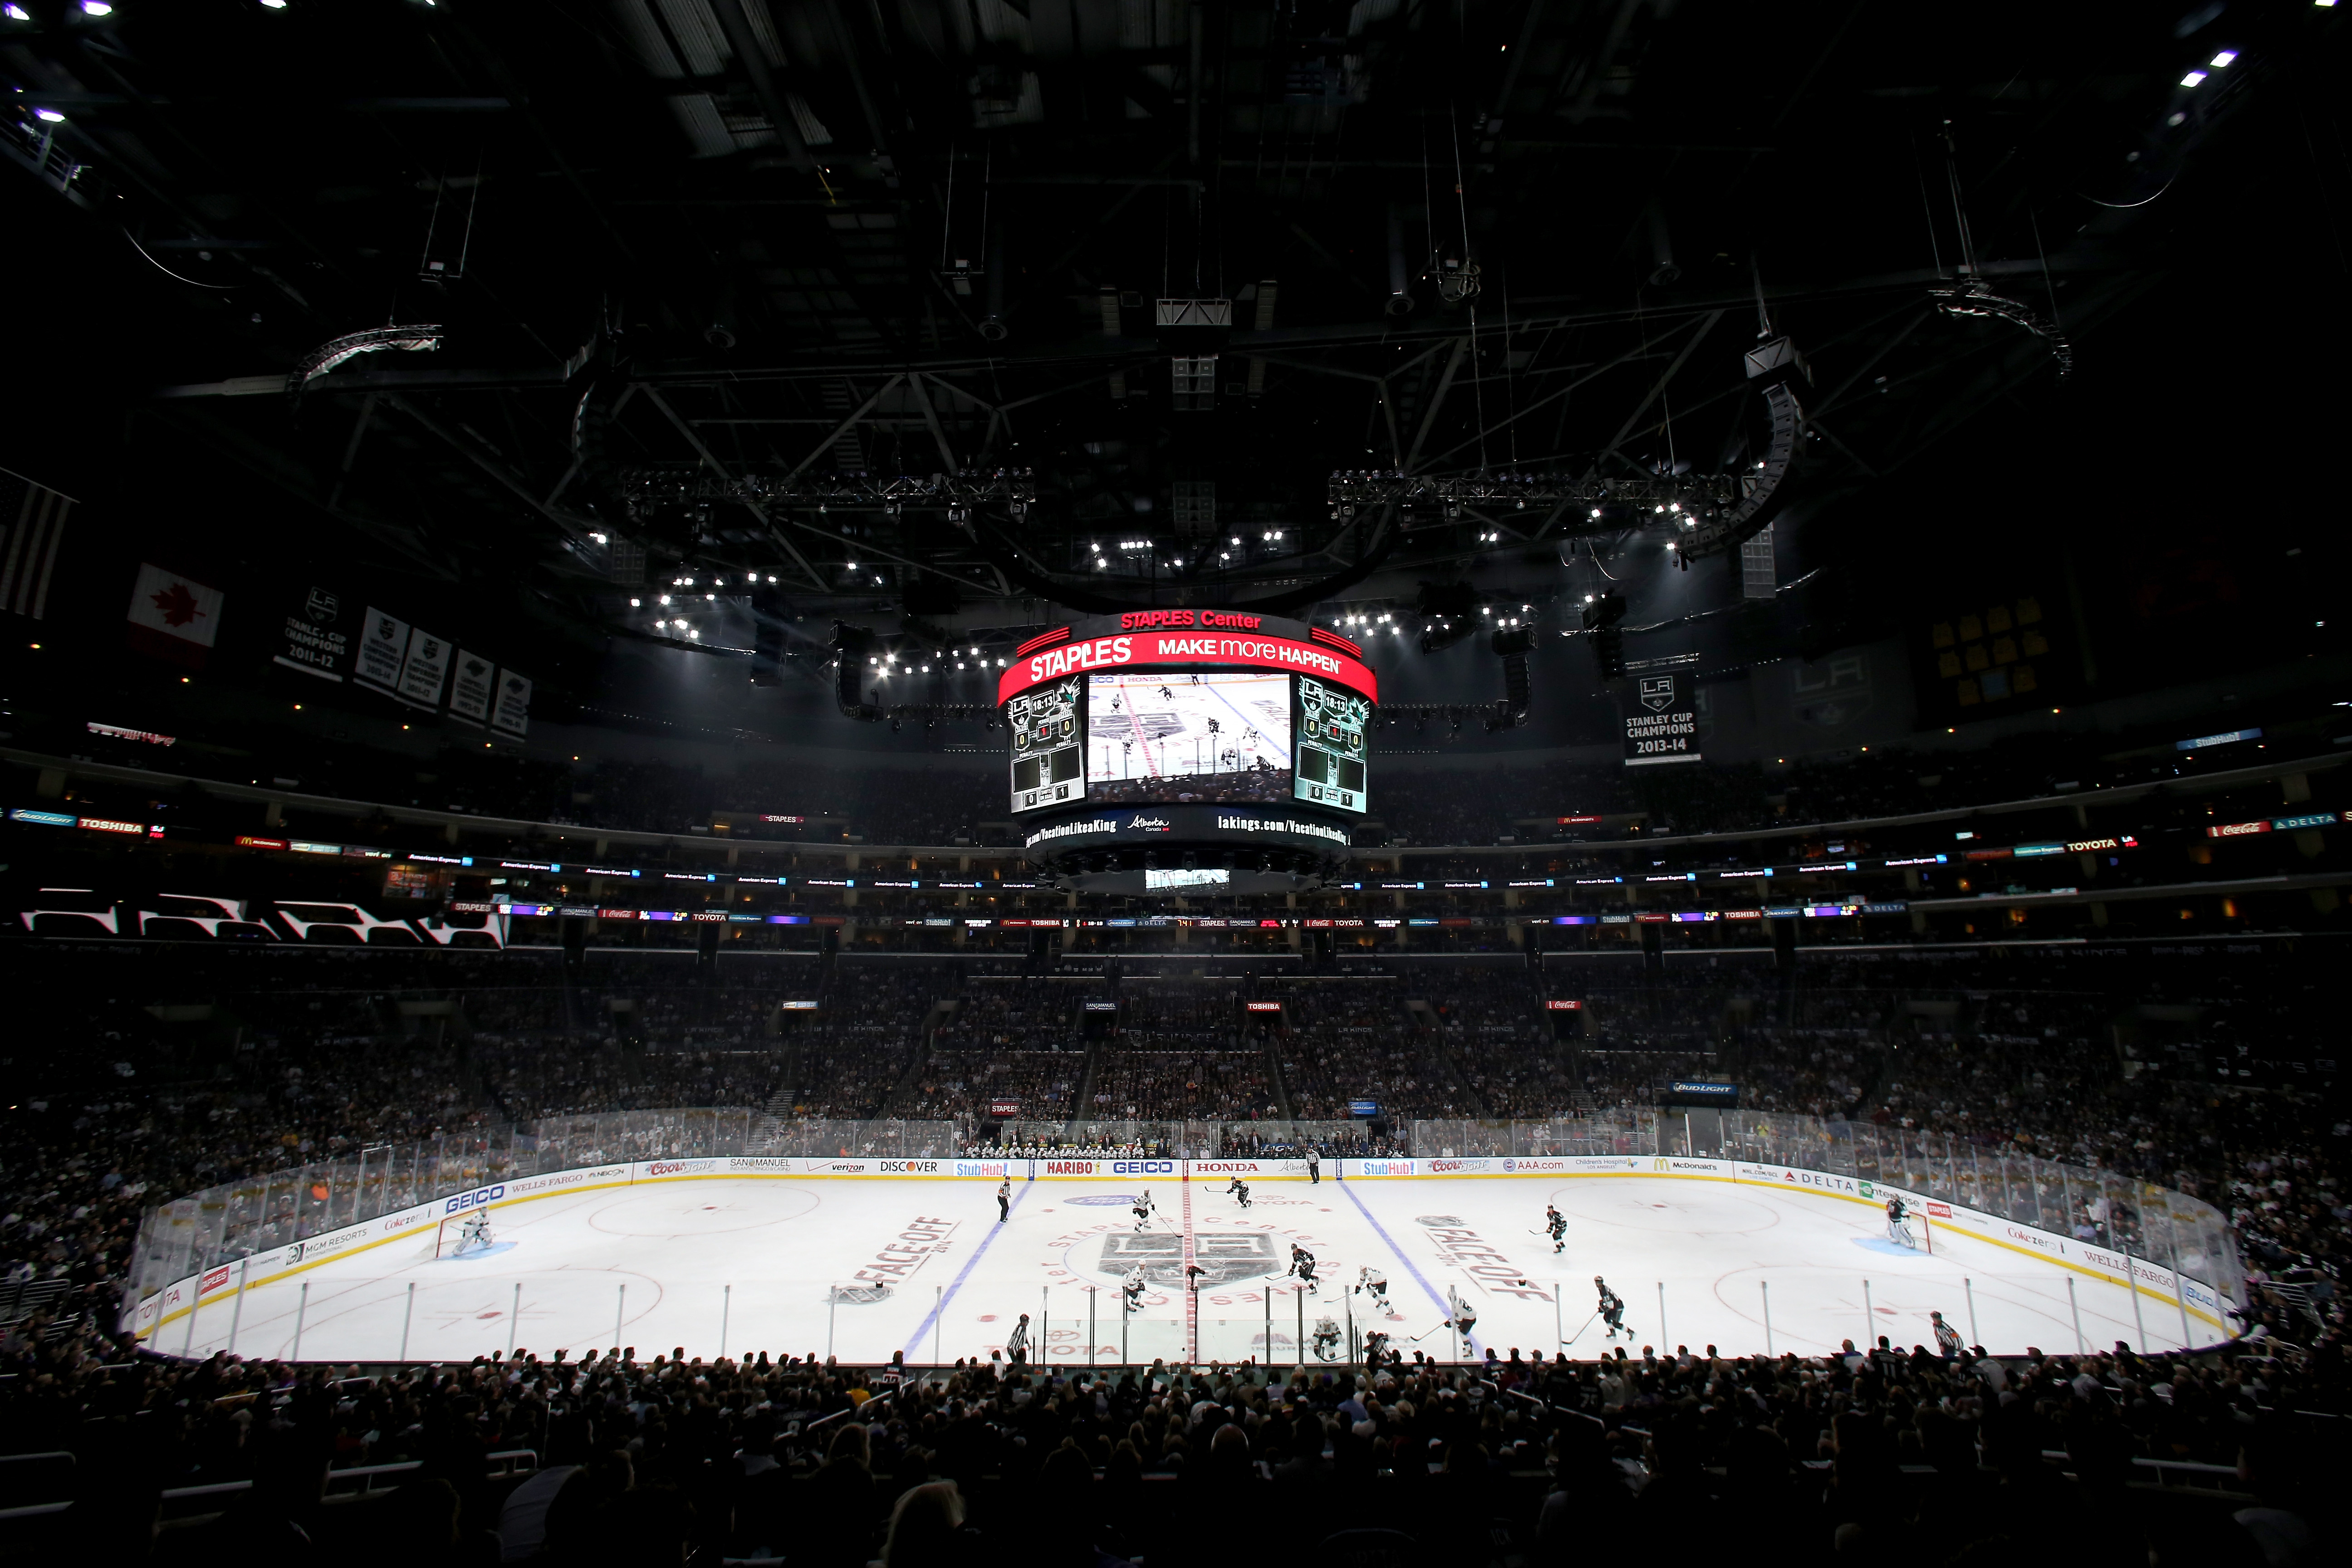 An overall view of the interior of the arena at the NHL season opener at Staples Center on October 8, 2014 in Los Angeles, California.